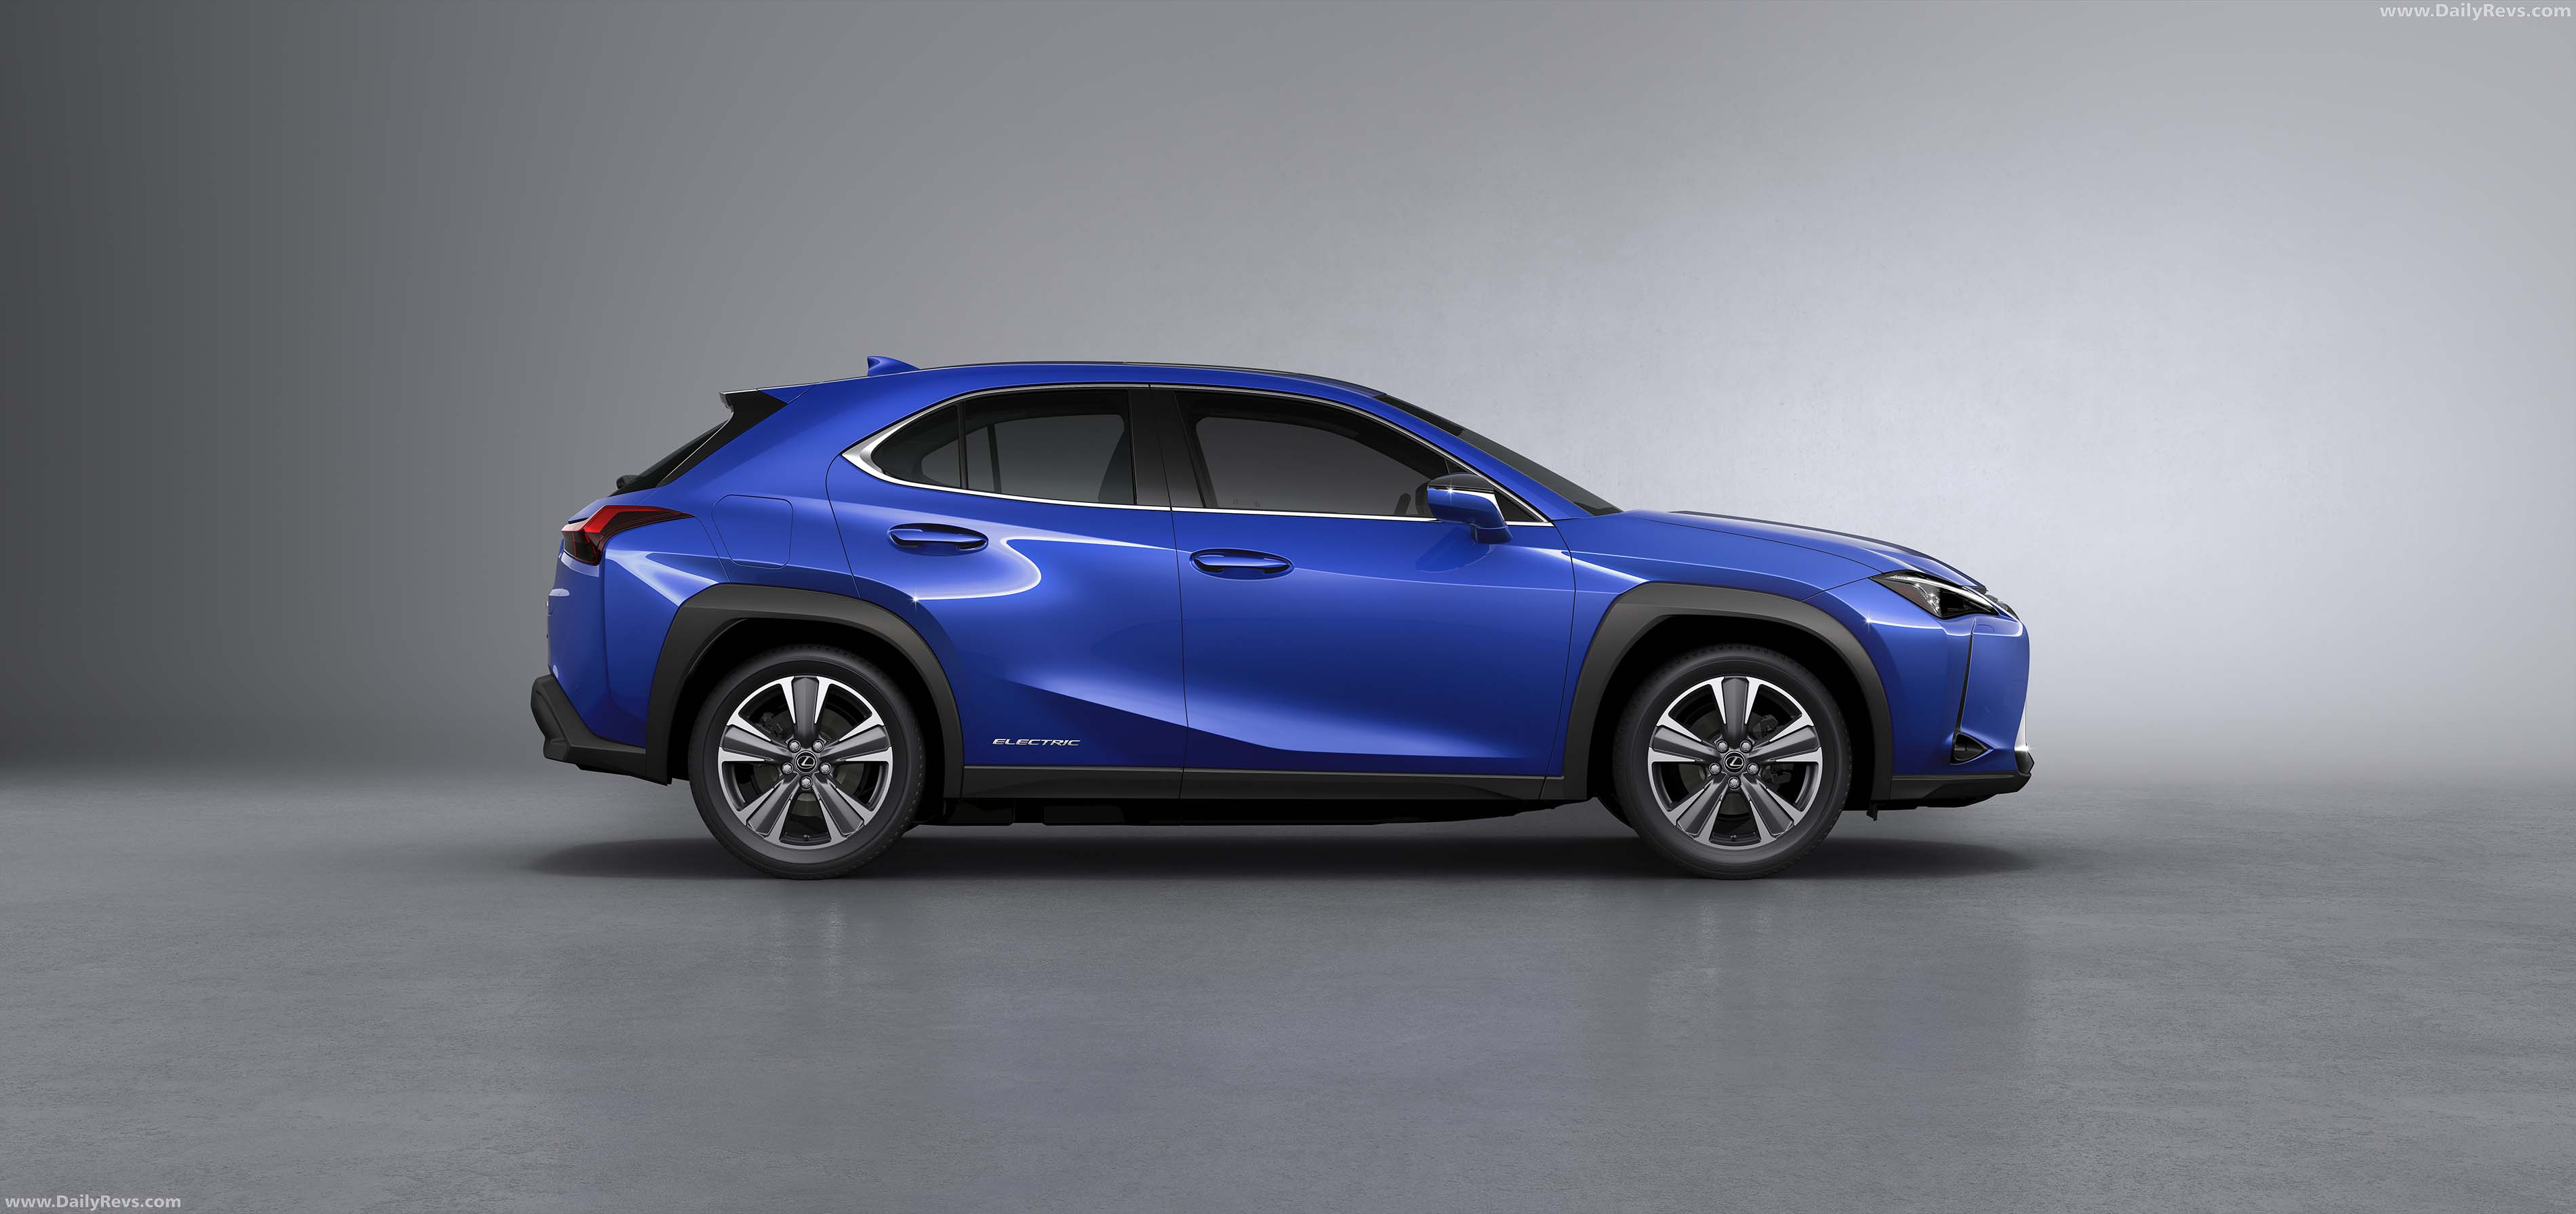 2021 Lexus UX 300e - HD Pictures, Videos,Specs & Videos ...